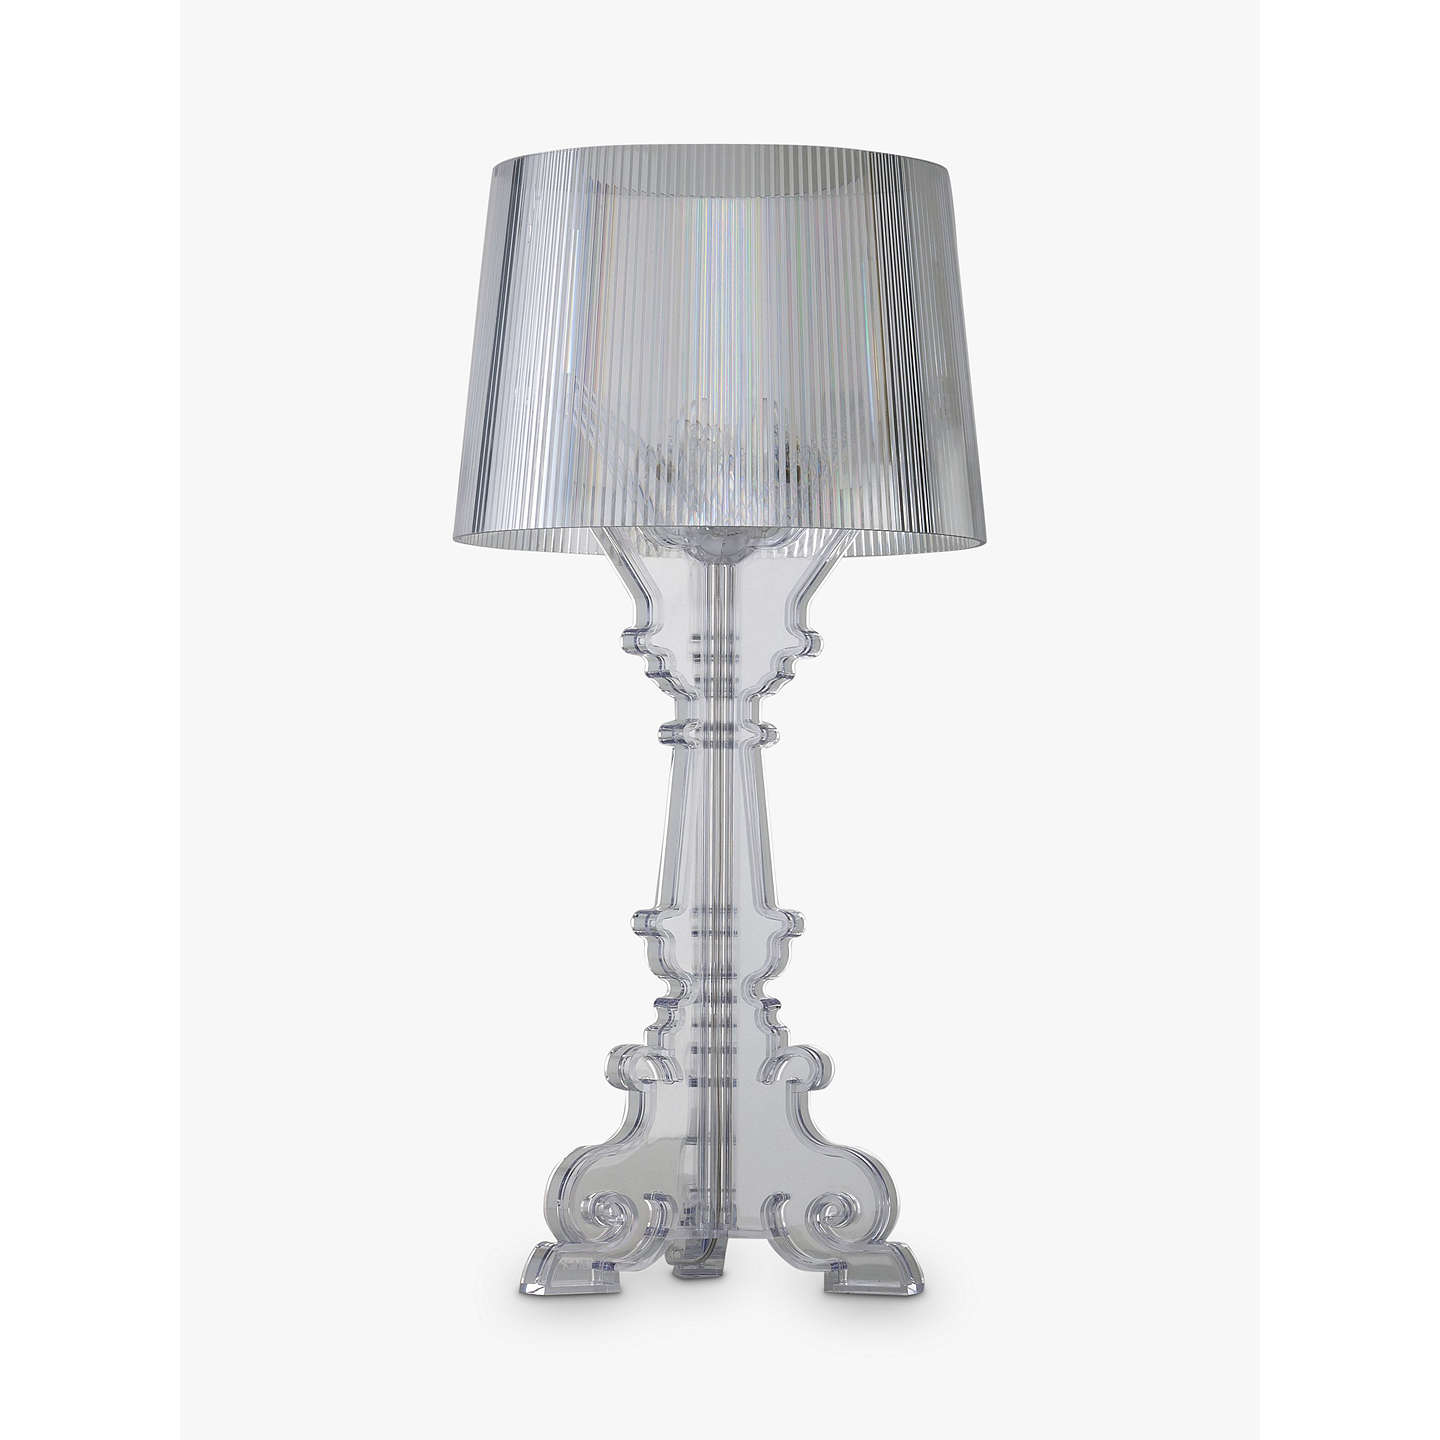 BuyKartell Bourgie Table Lamp, Clear Online at johnlewis.com